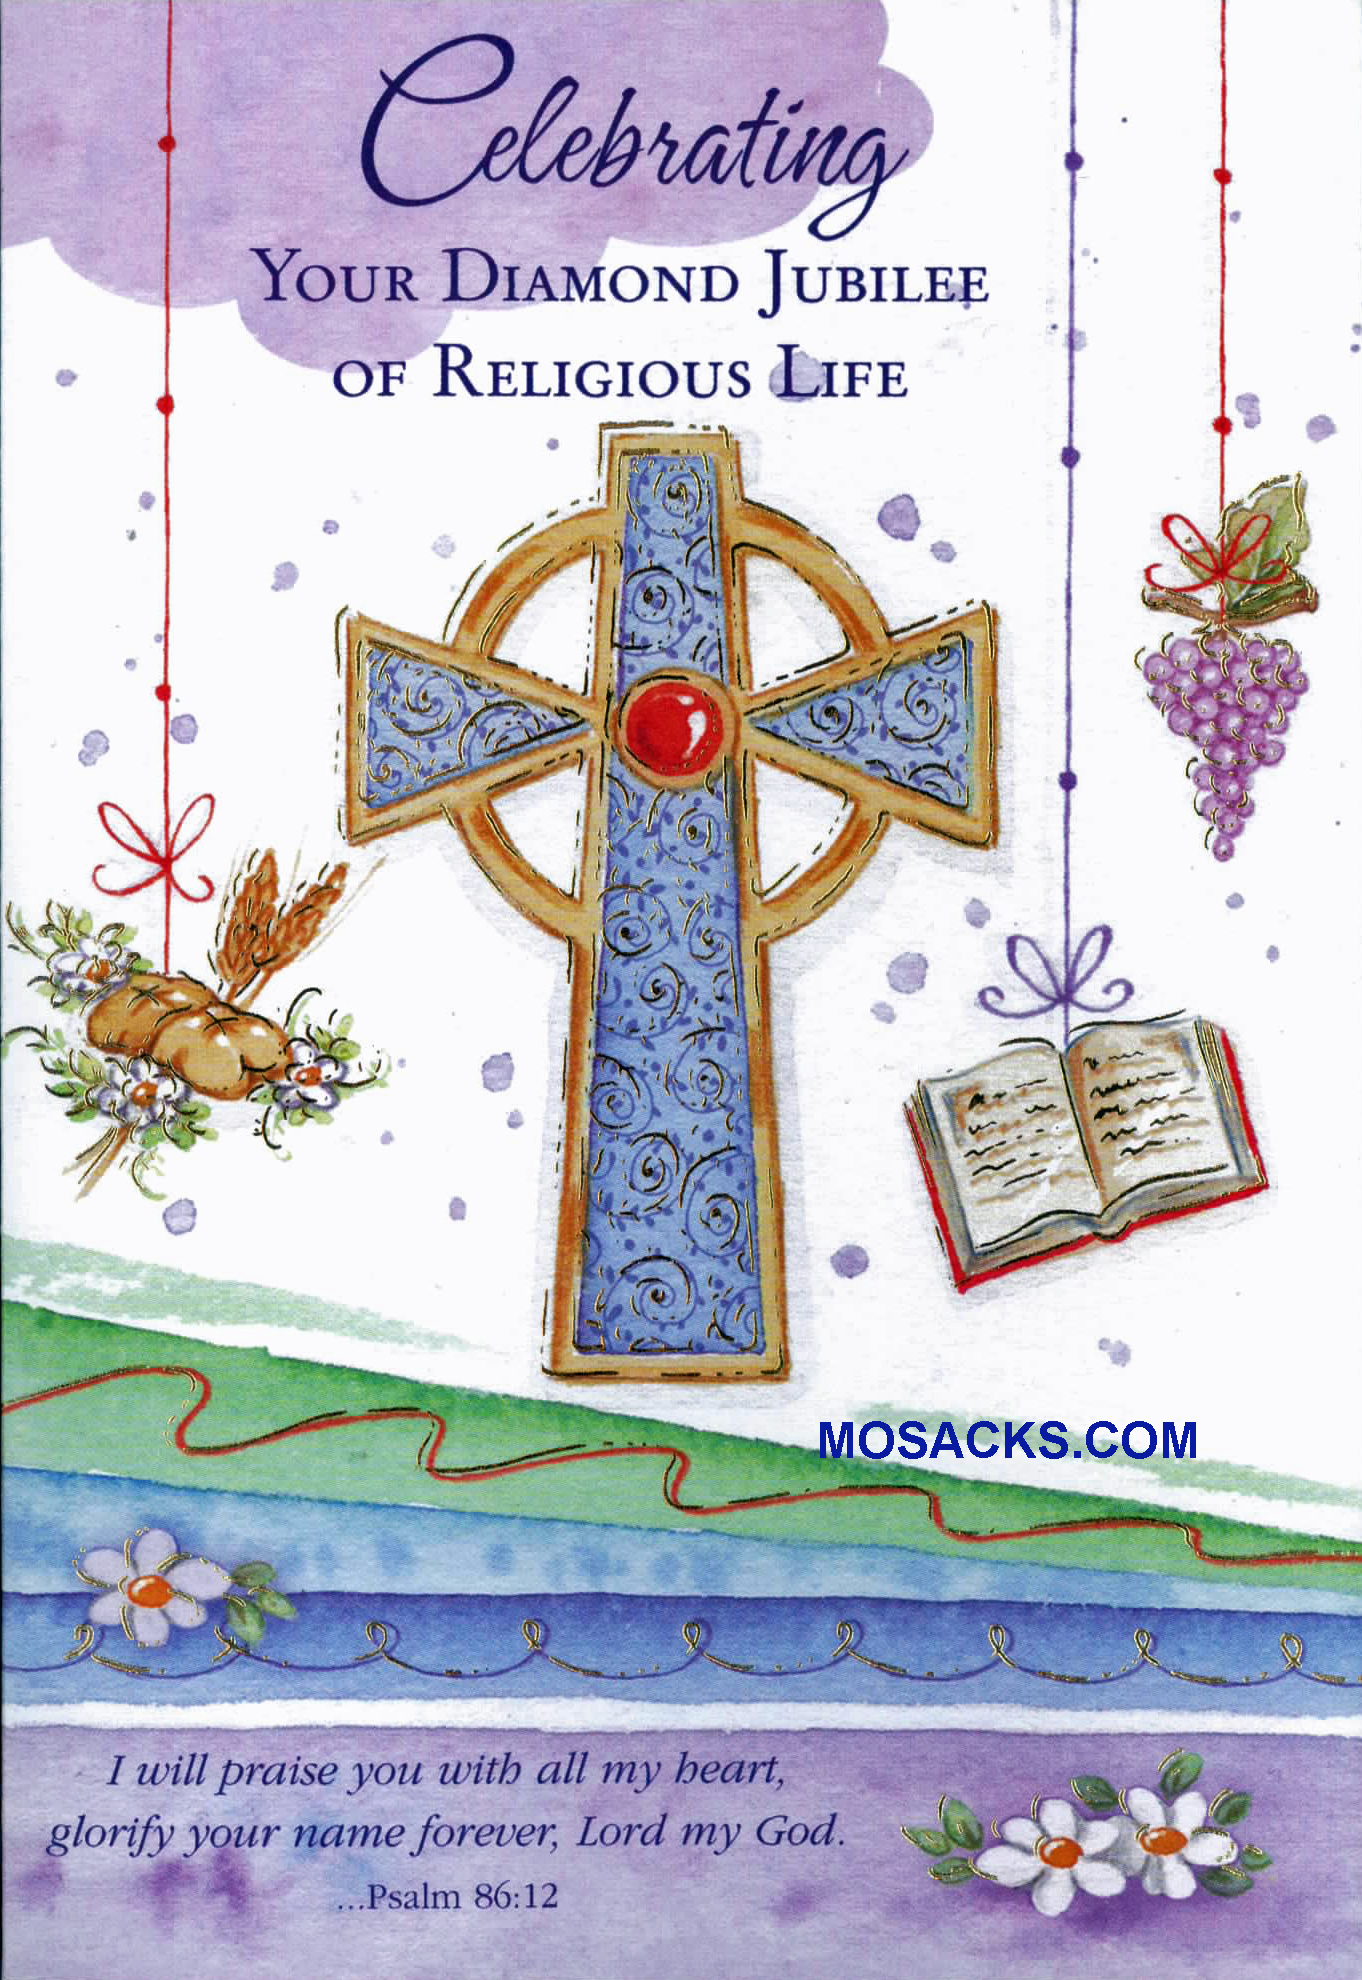 Jubilee, Anniversary of Religious Life Greeting Cards